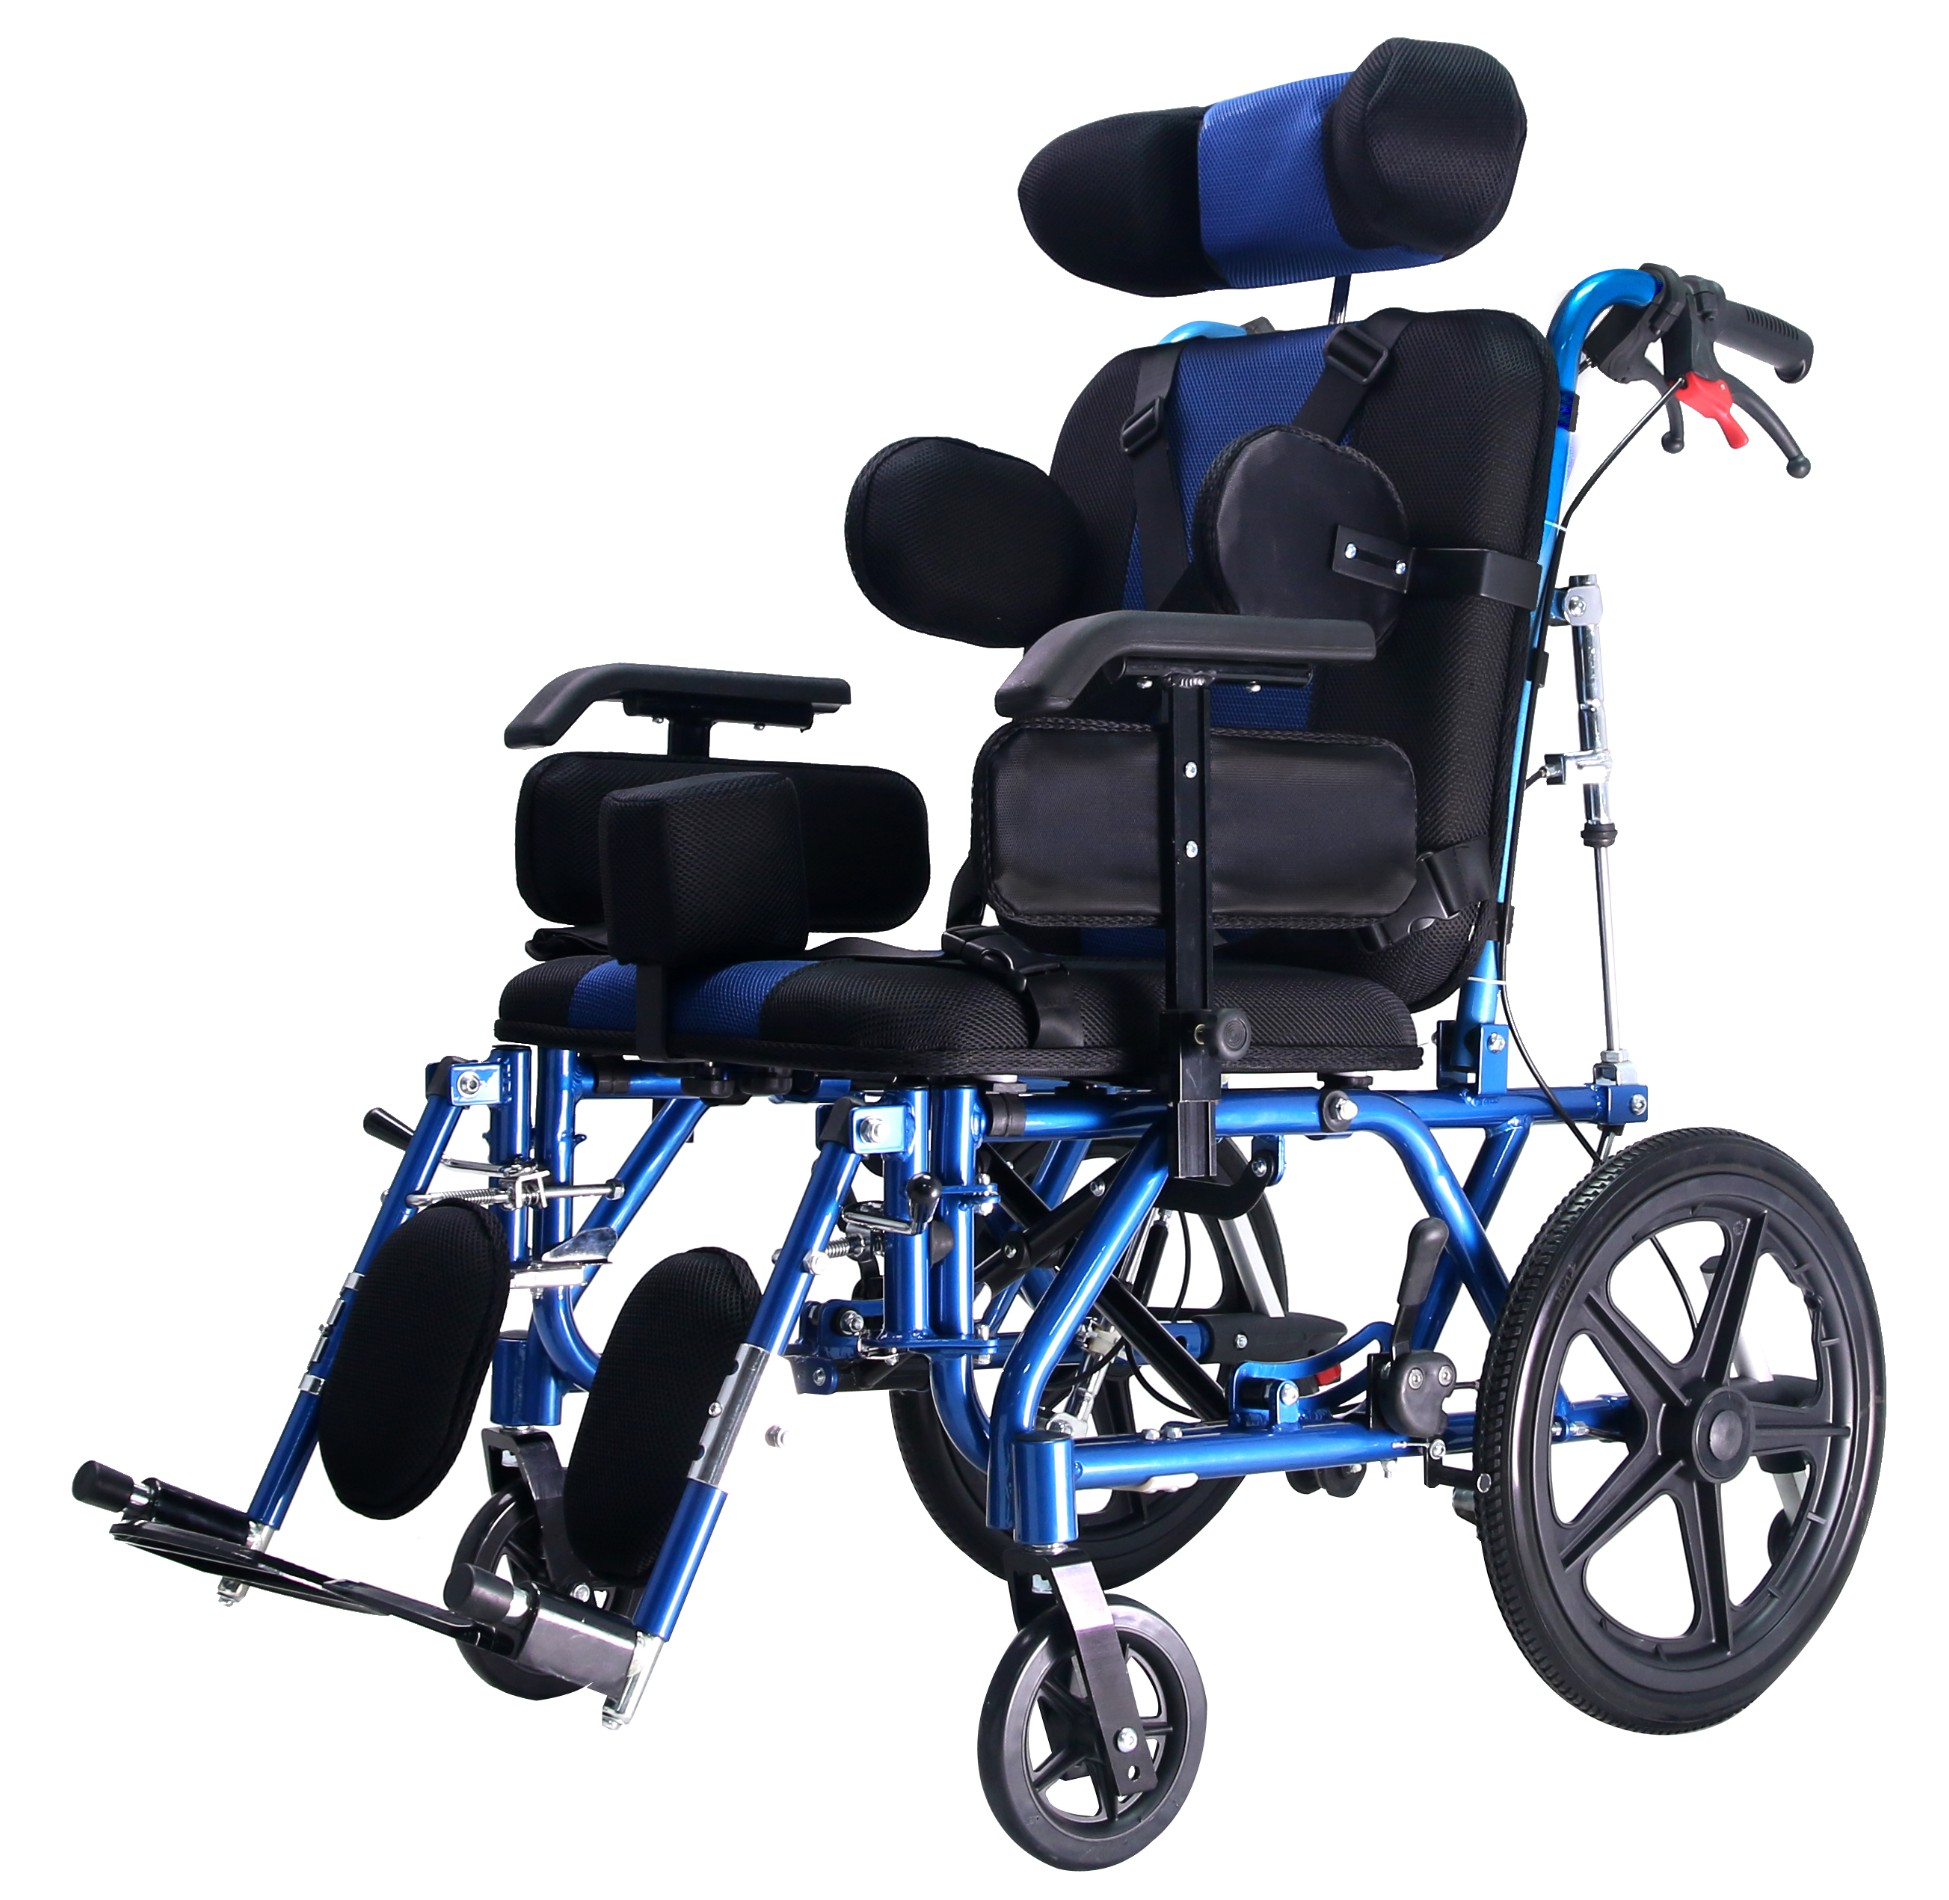 Assitance Positioning Wheelchair For Cerebral Palsy Manufacturers, Assitance Positioning Wheelchair For Cerebral Palsy Factory, Supply Assitance Positioning Wheelchair For Cerebral Palsy